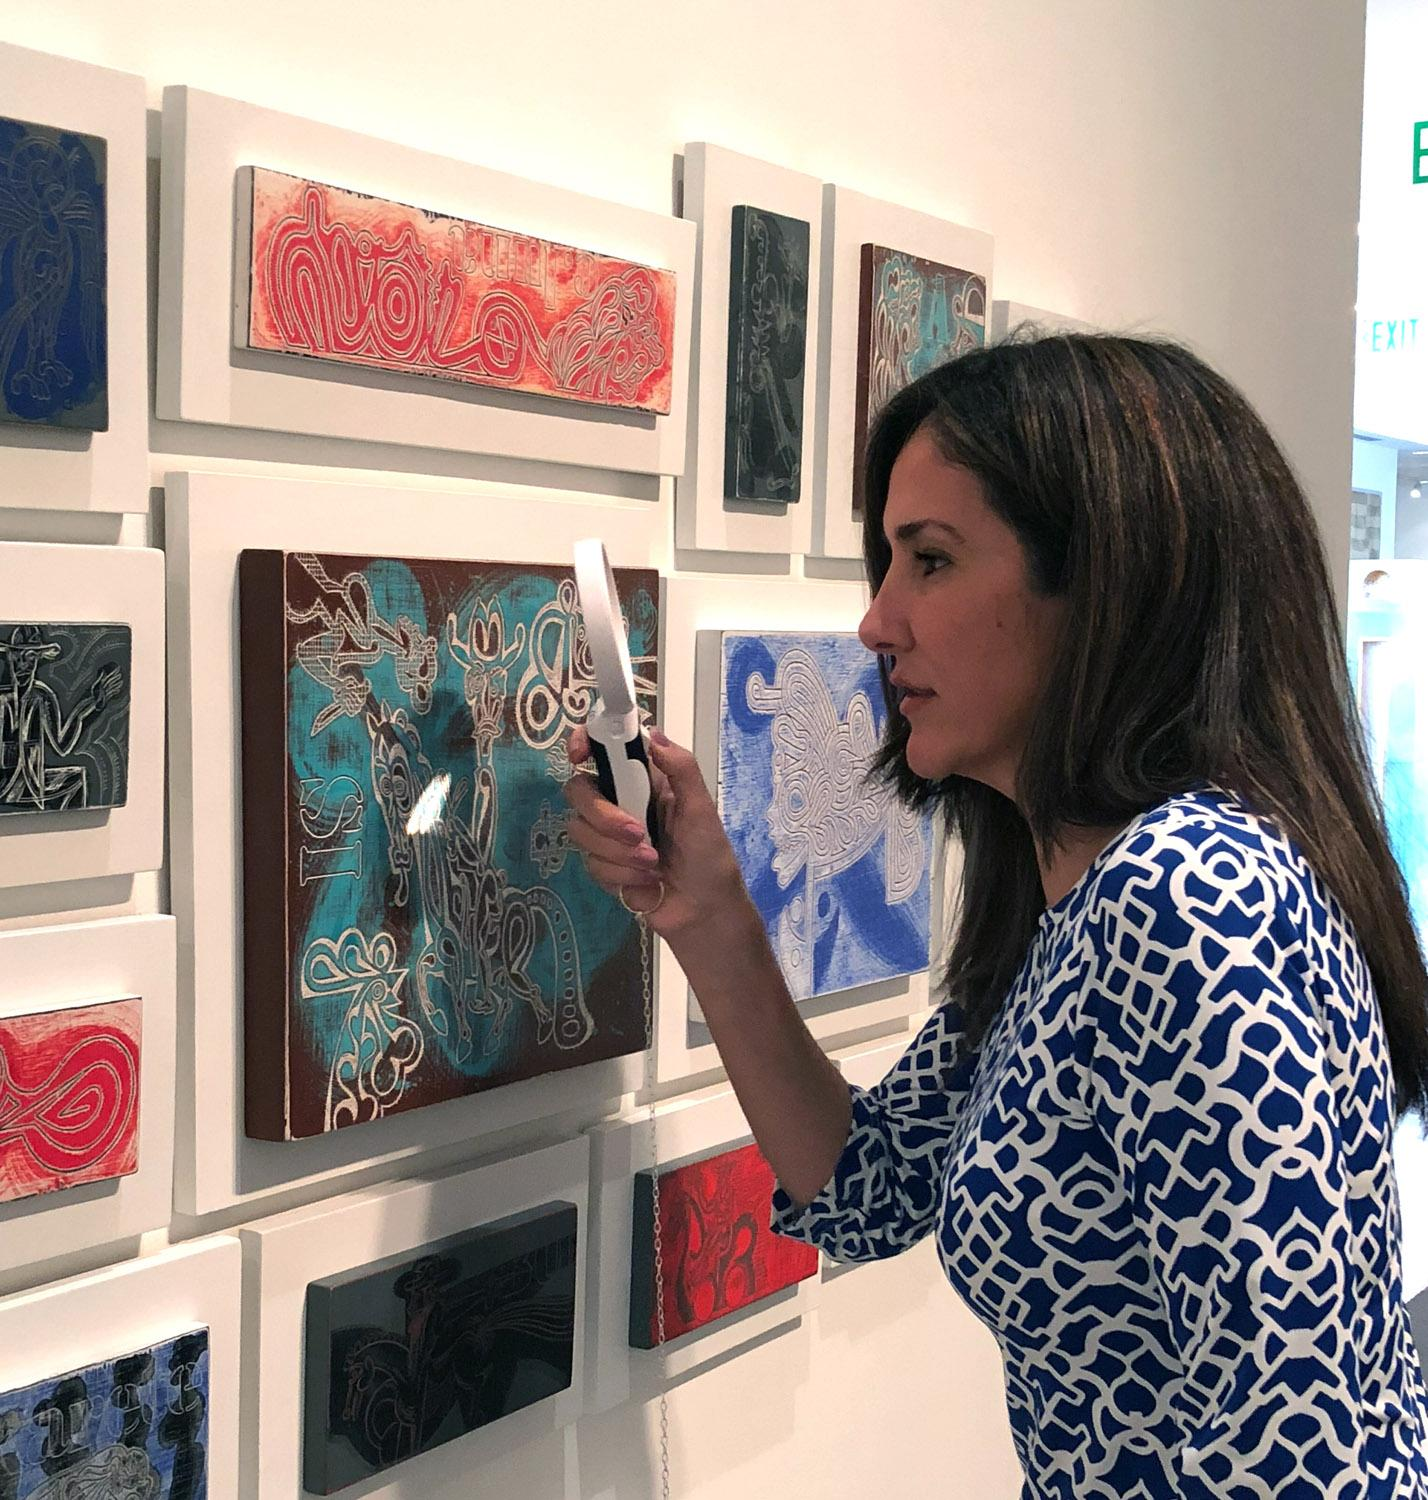 Claudia Luna at Deep Line, Drawings by Carlos Luna; Boca Raton Museum of Art, Boca Raton, FL, 2017